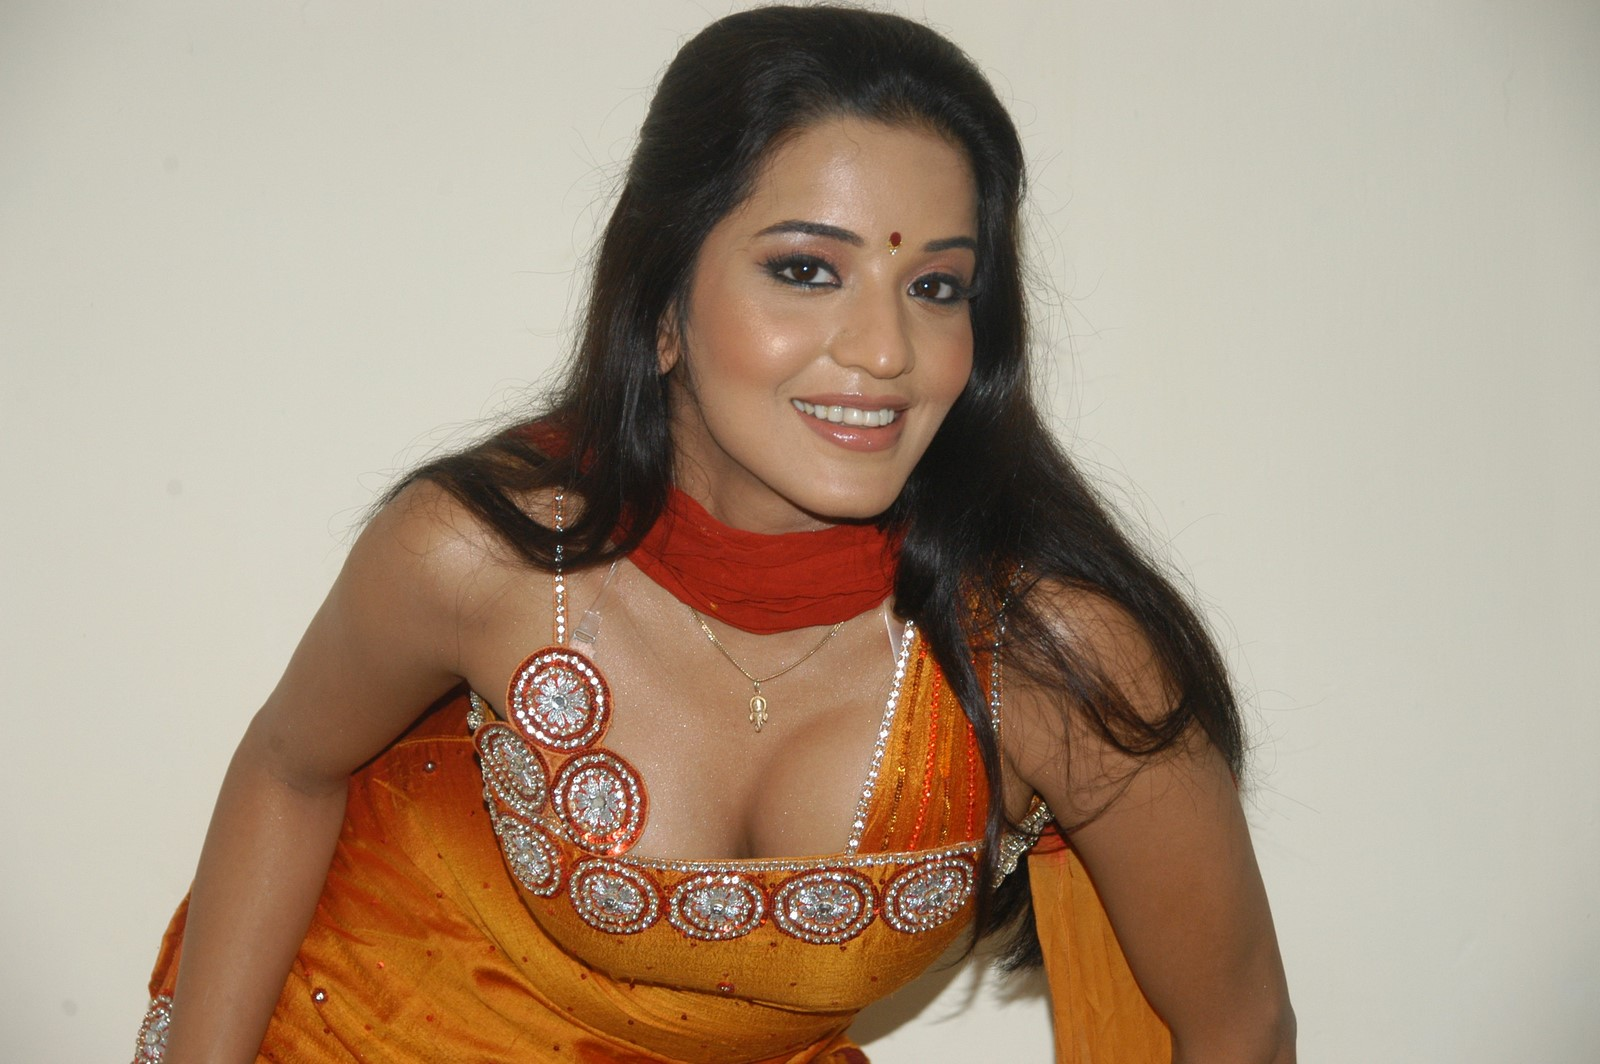 Those on! Bhojpuri full sexy fucking